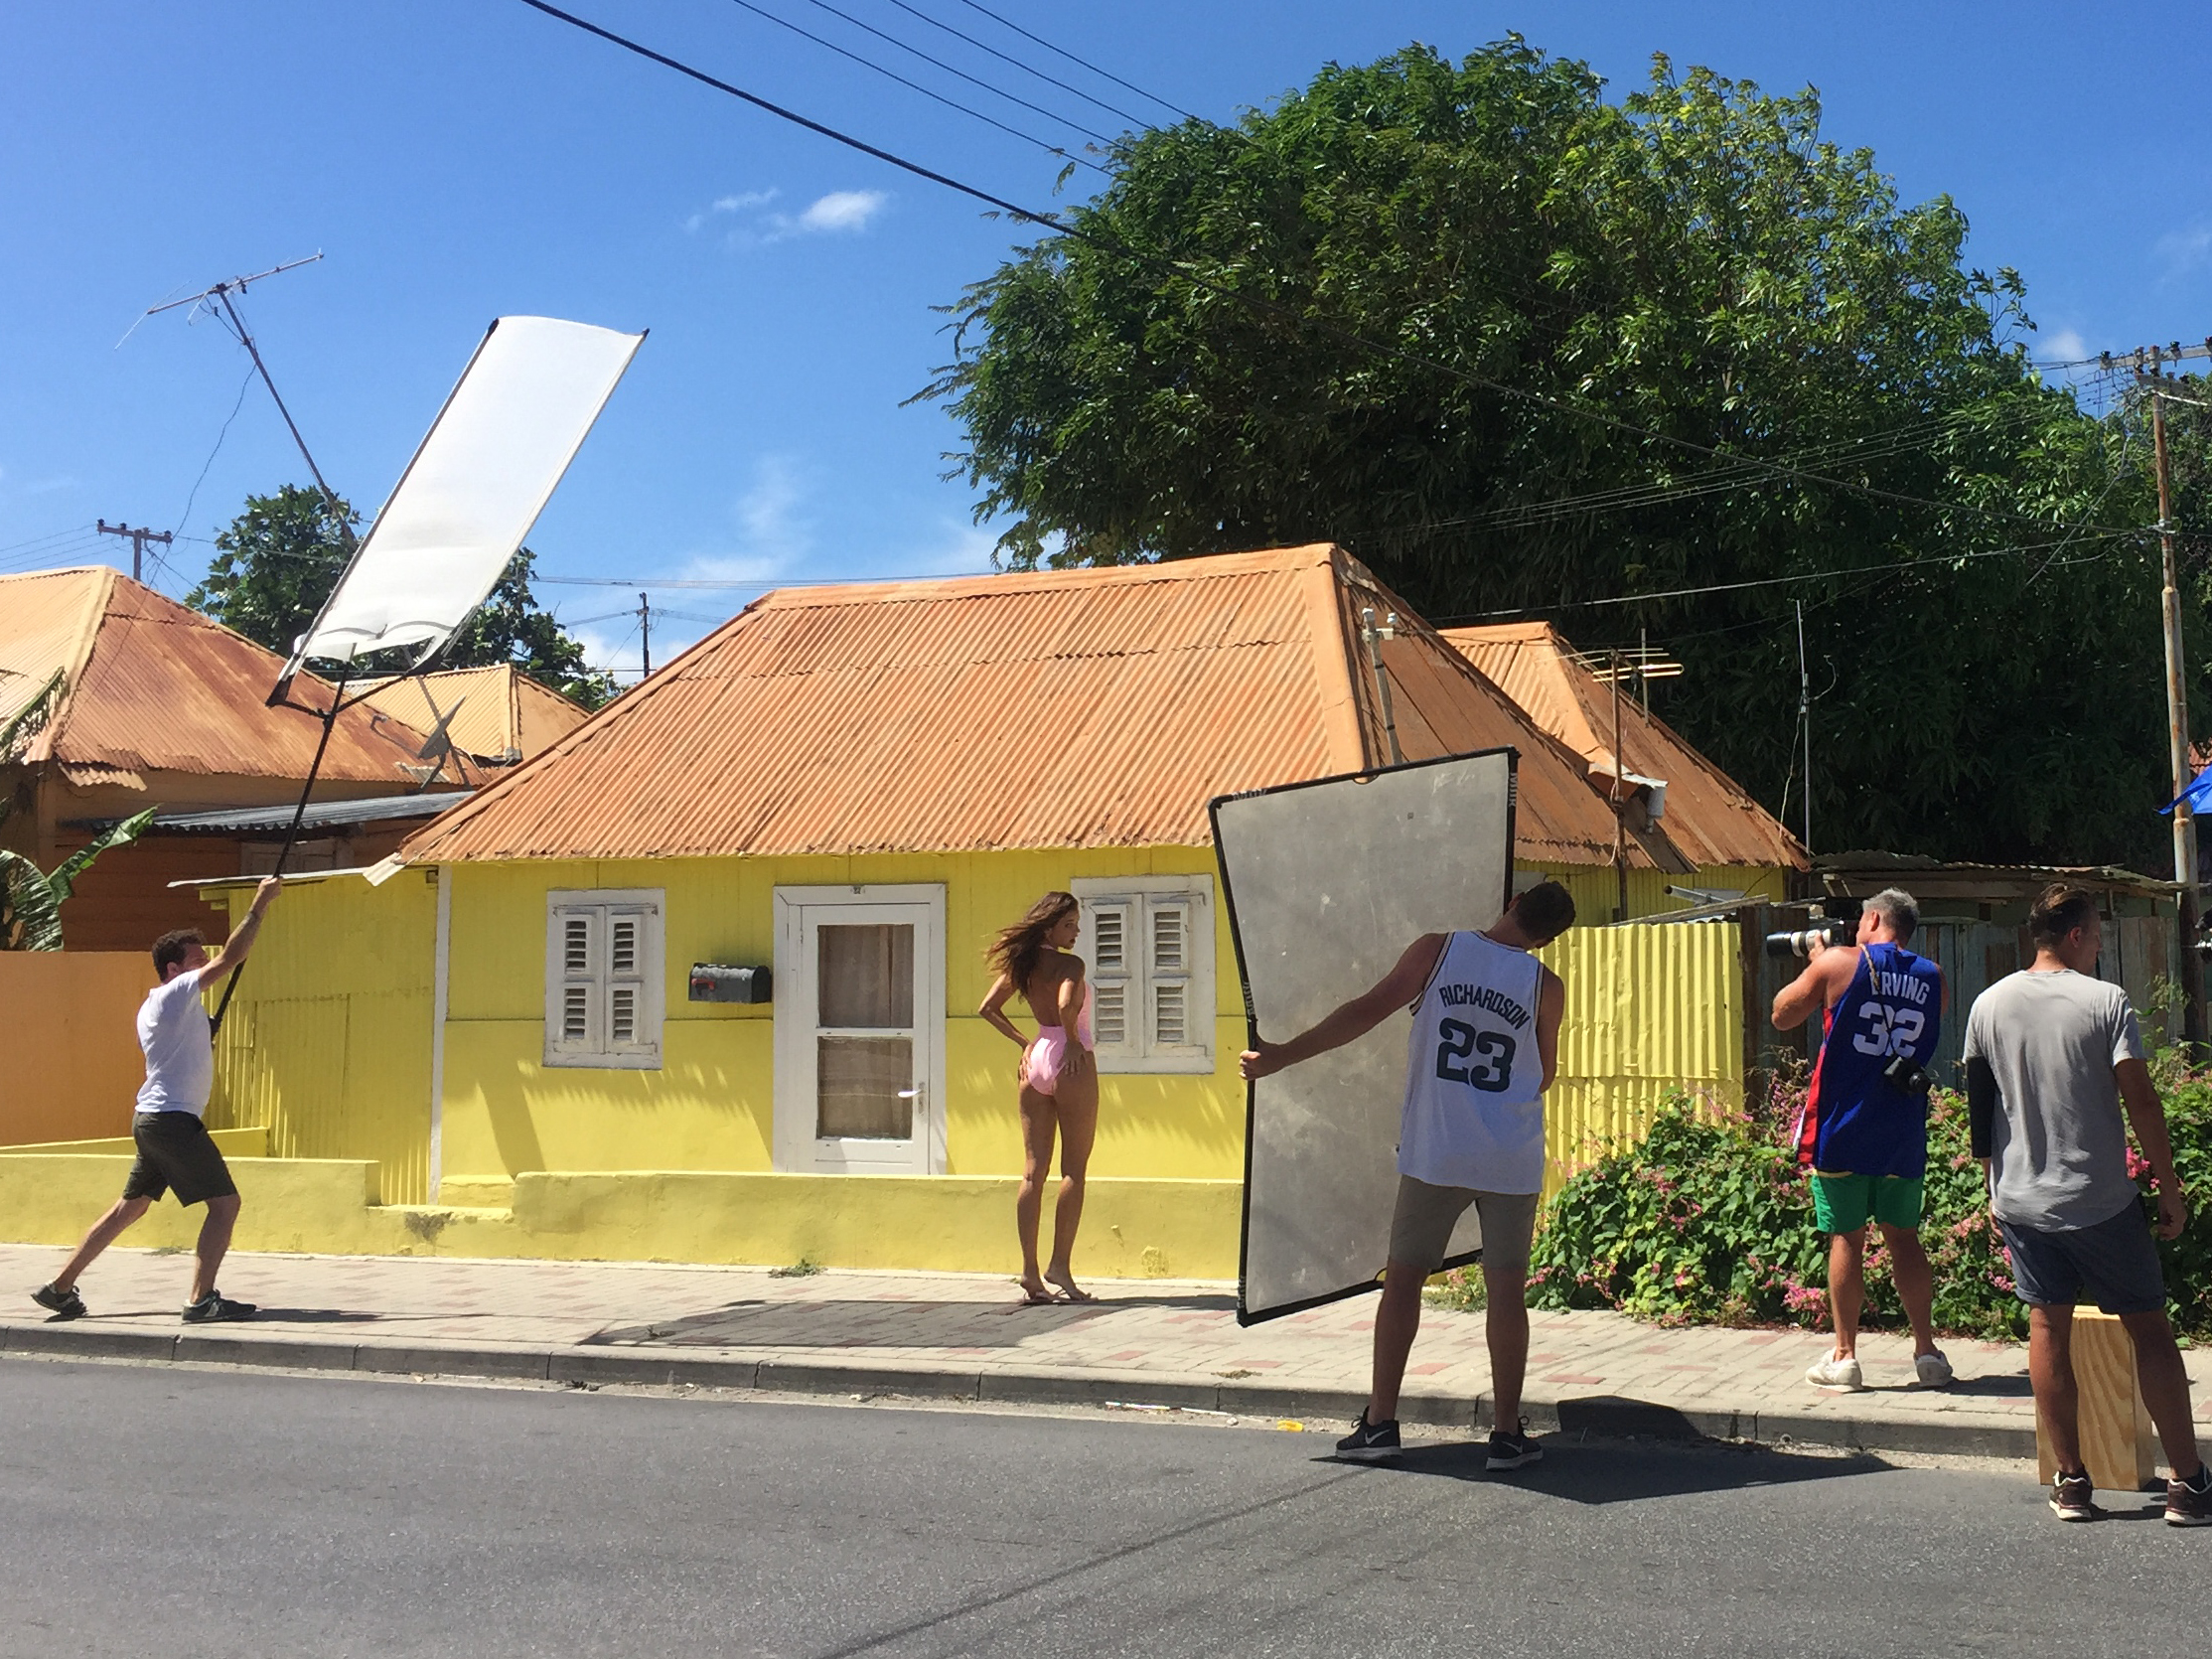 Barbara Palvin being photographed in Curacao